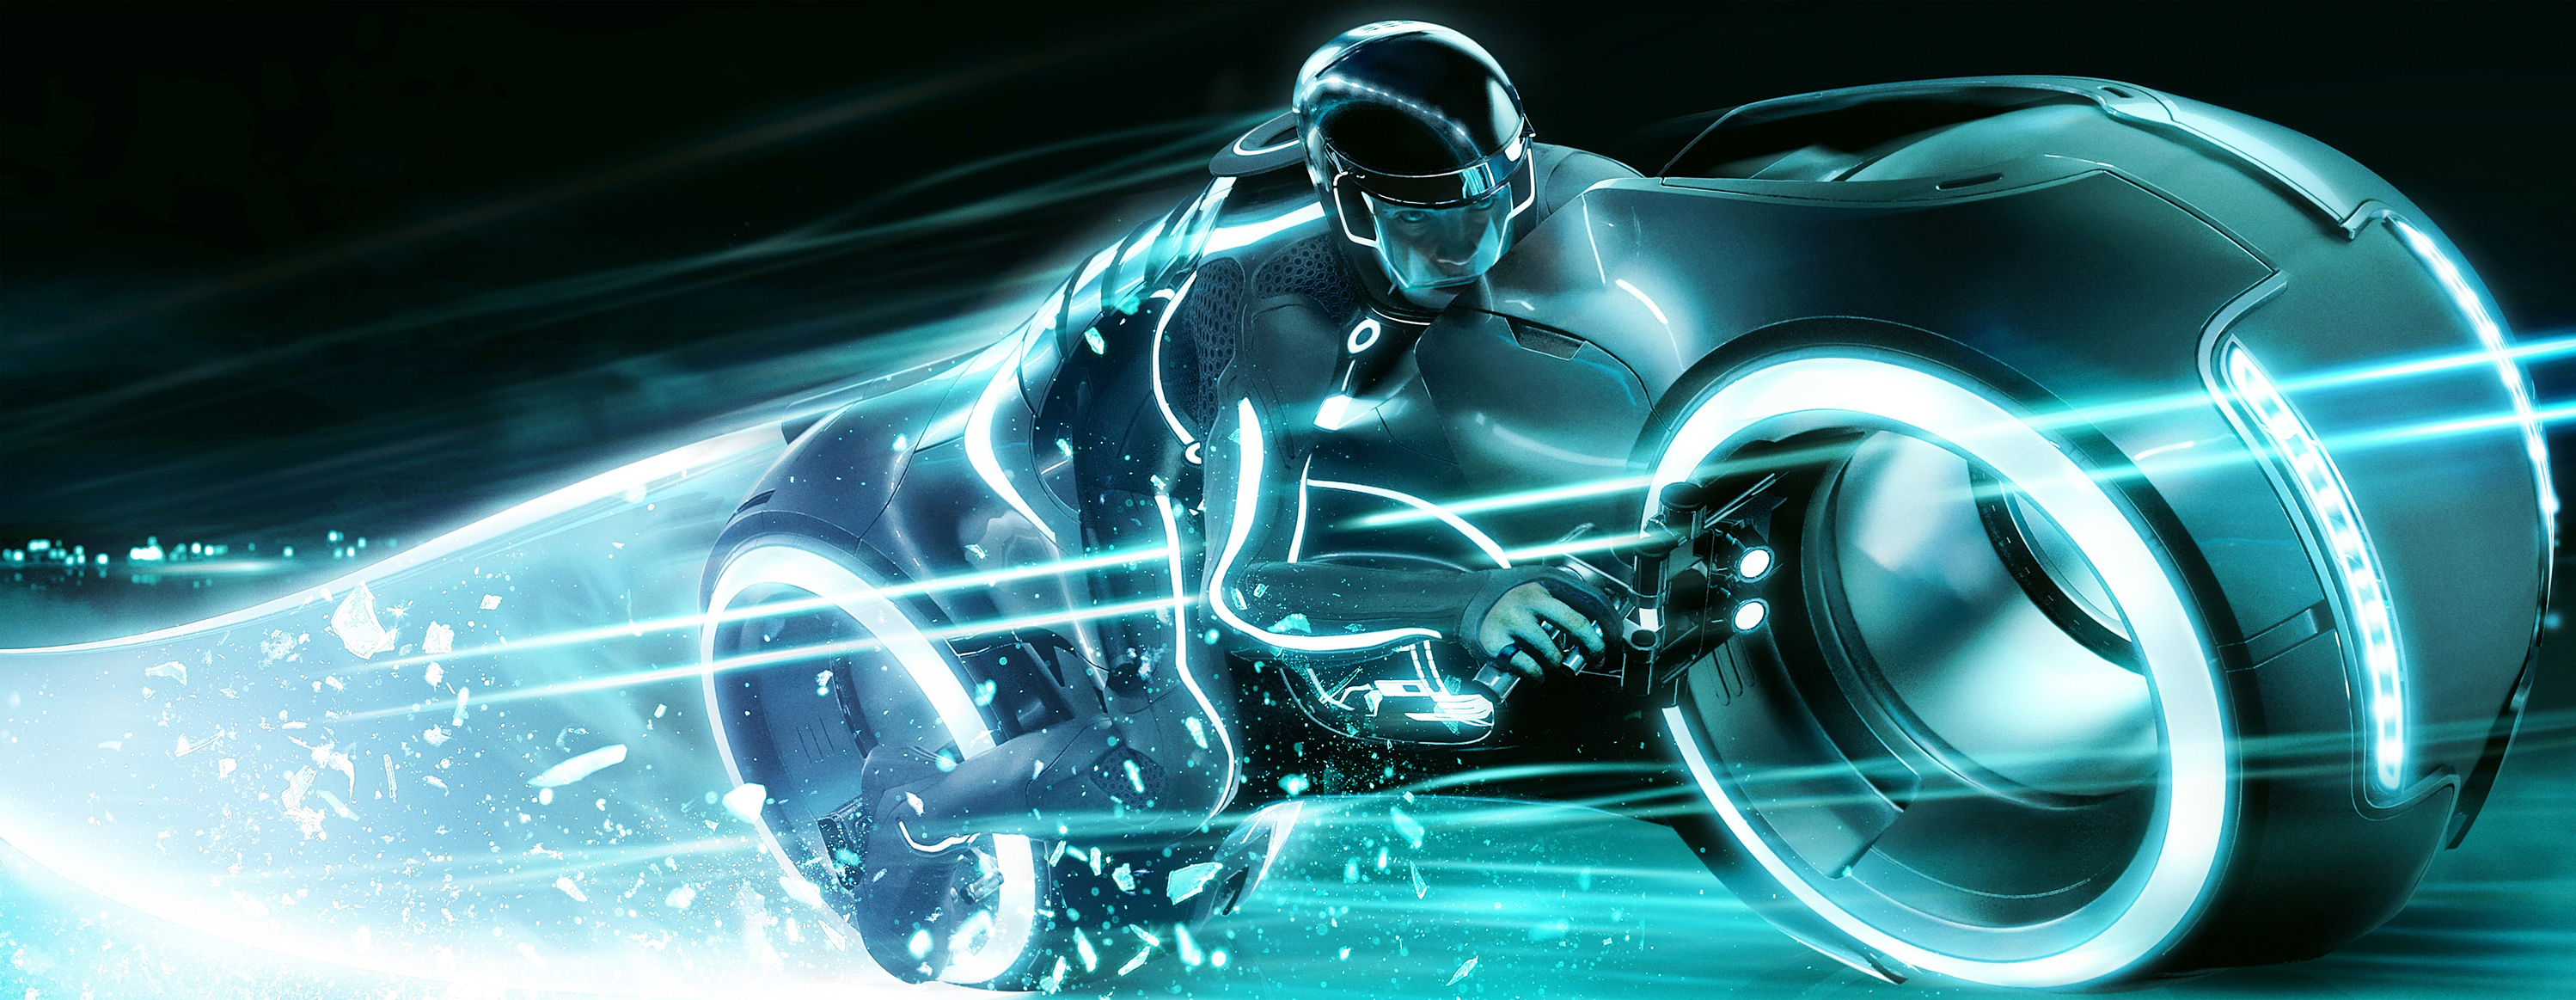 speeding light cycle from tron: legacy desktop wallpaper